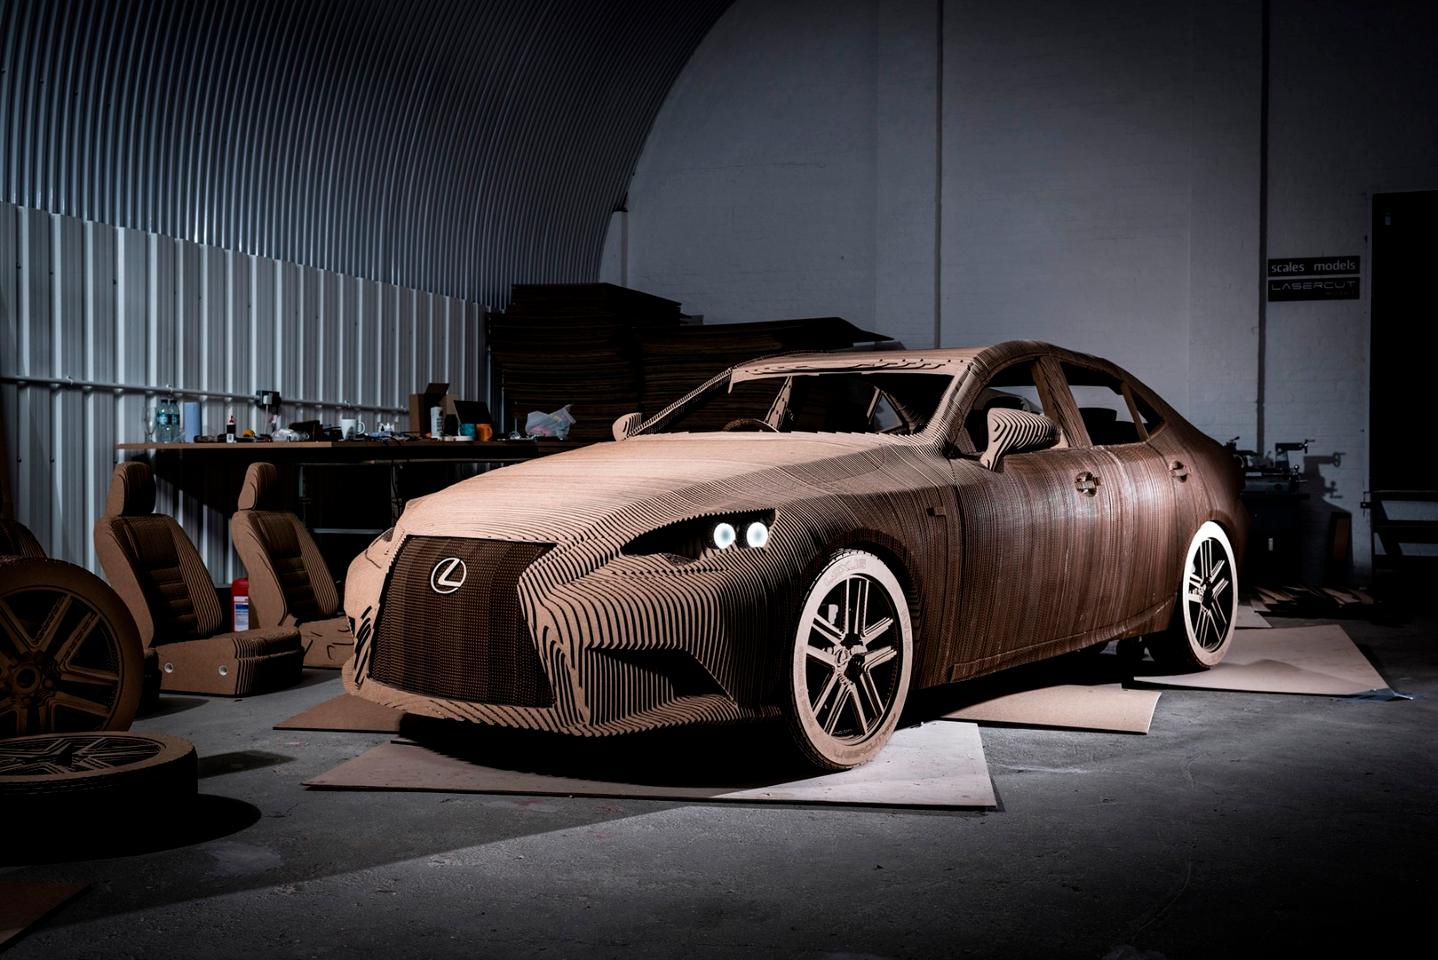 The Origami Car is made of 1,700 cardboard sheets